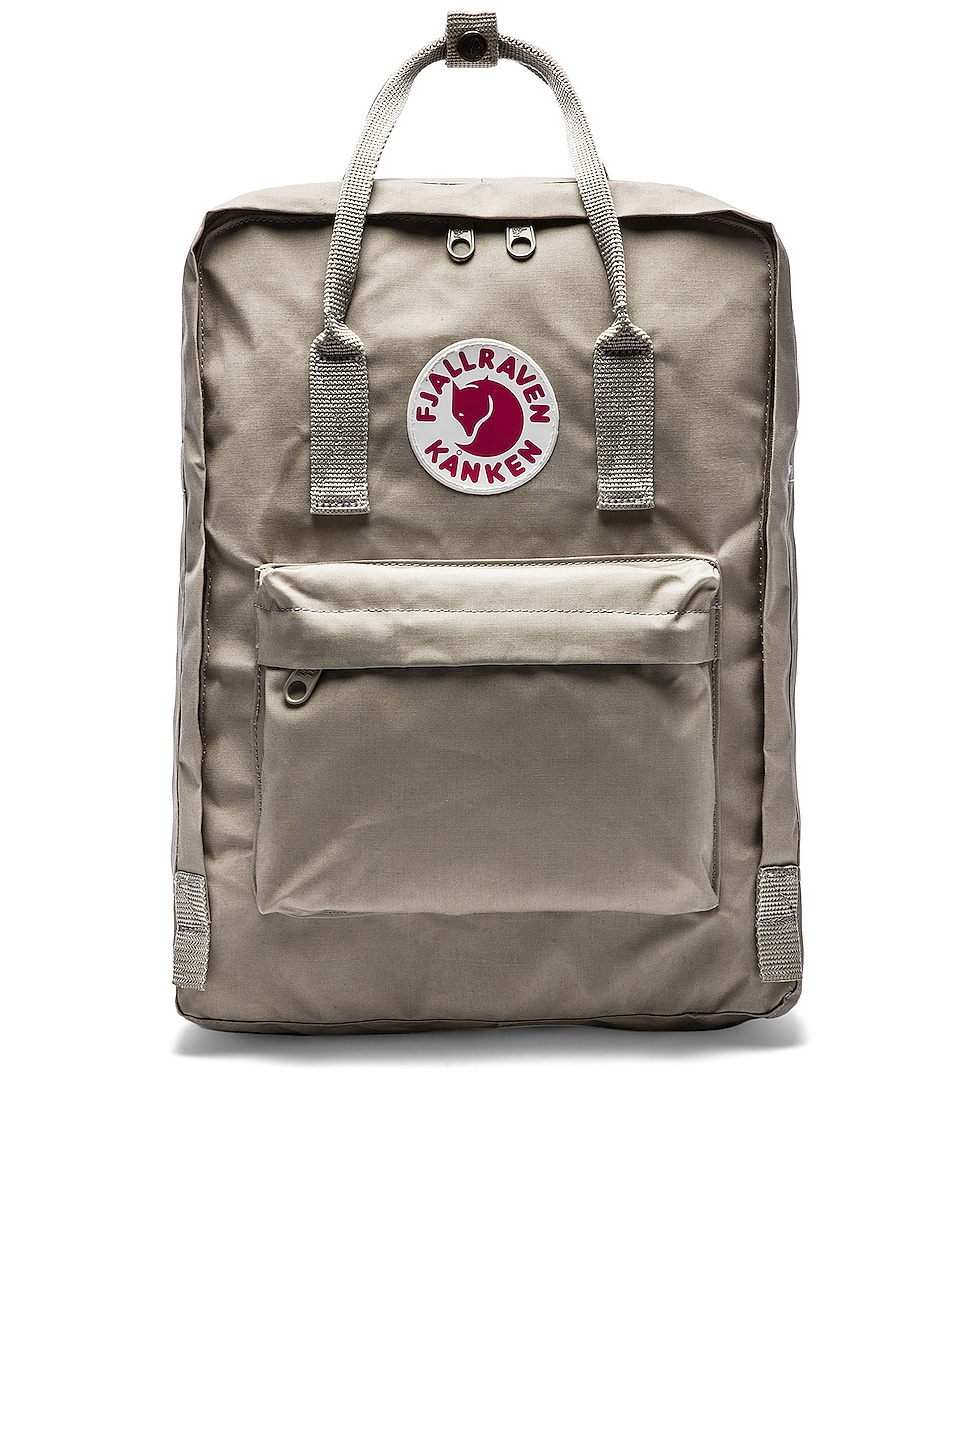 Fjallraven Kanken in Putty